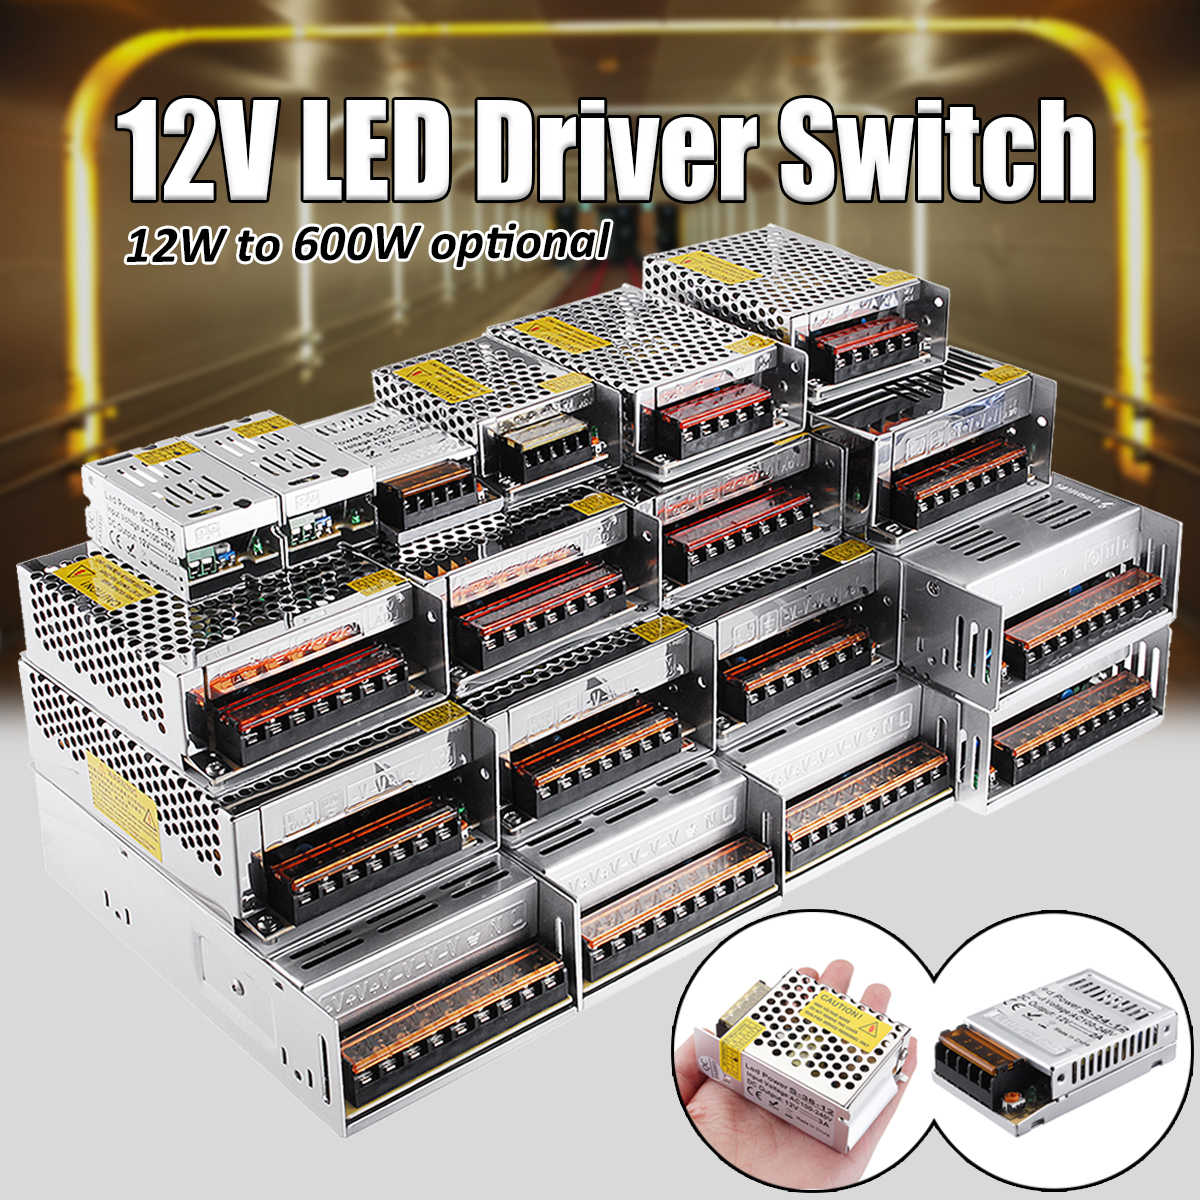 12V 12/15/24/36/48/60/72/100/120/150/180/200/240/300/400W Switching Power Supply Driver For LED Strip Led Adapter